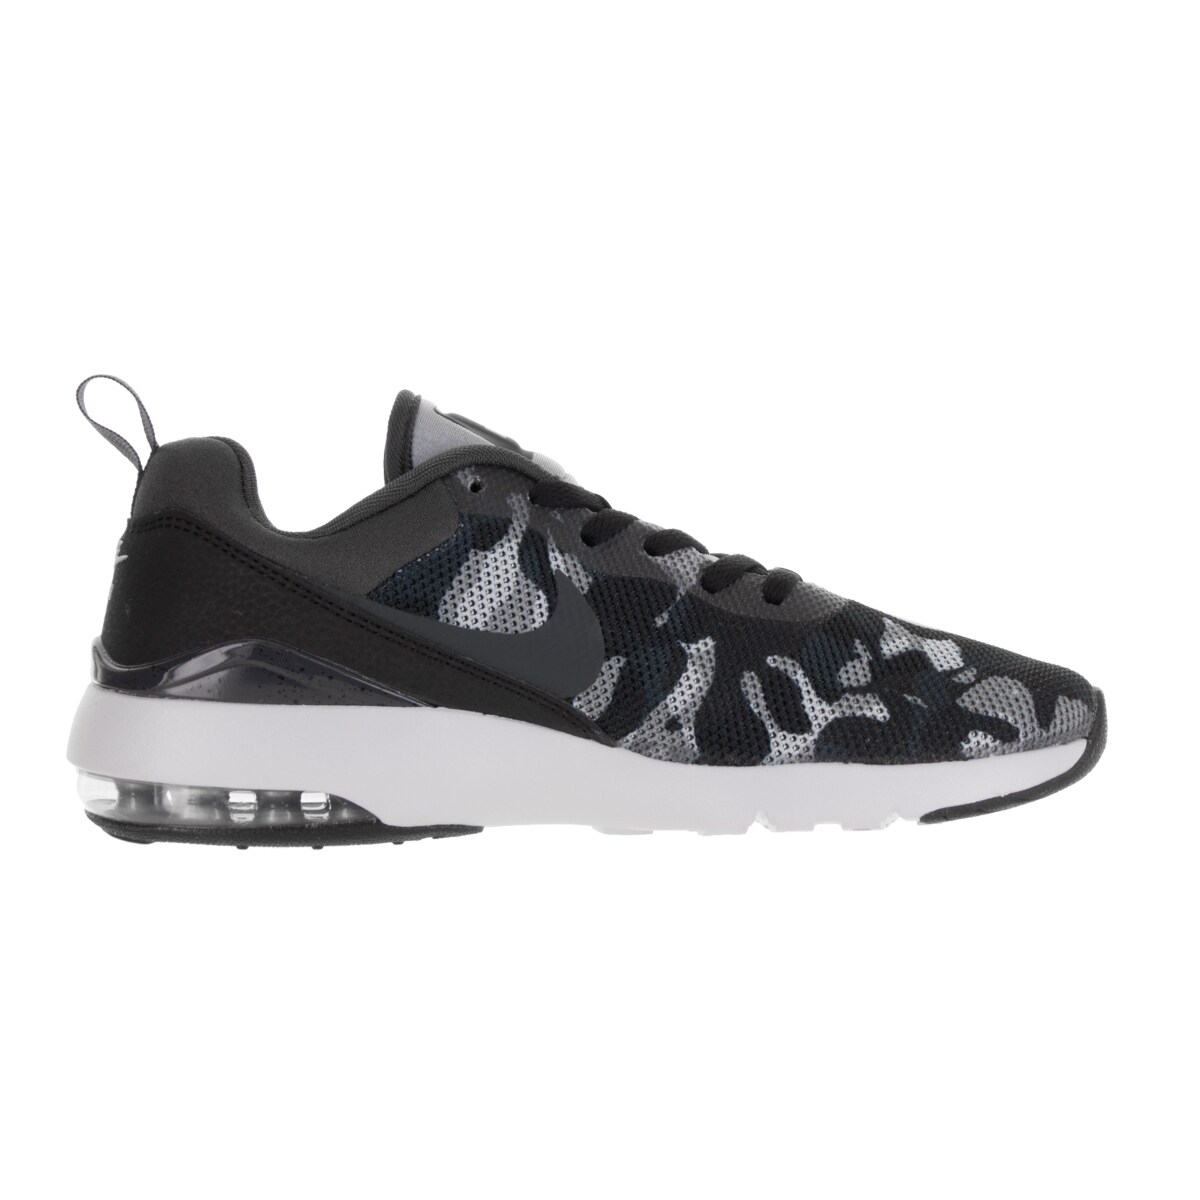 cbeff3732941 Shop Nike Women s Air Max Siren Print Black Anthracite Wolf Grey Clear Grey  Running Shoe - Free Shipping Today - Overstock - 13313269